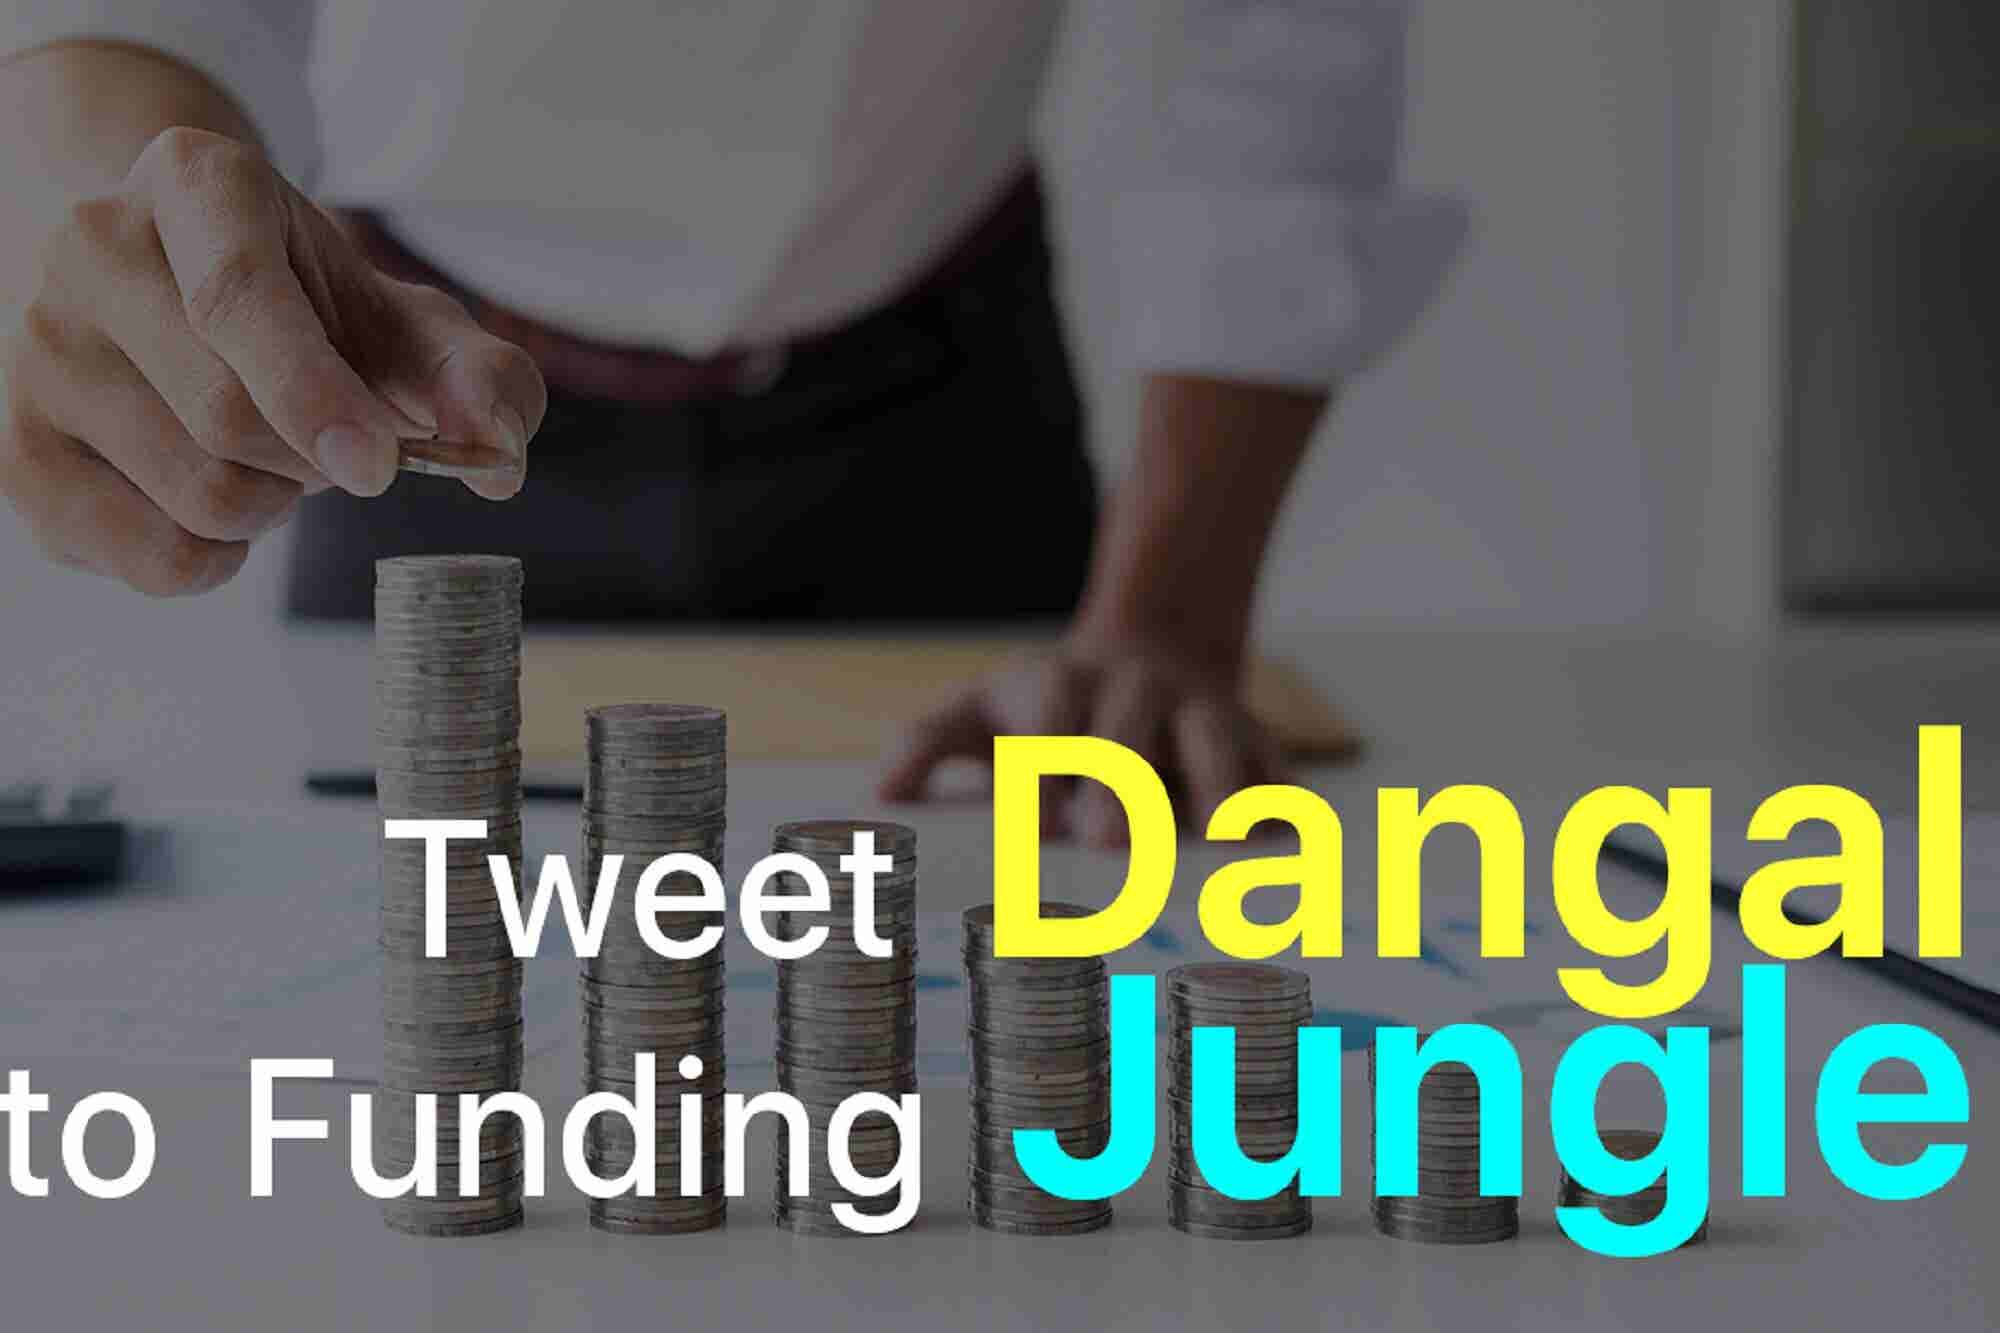 Week Wrap Up: From the Tweet Dangal to Funding Jungle, Here's What Happened Through the Week